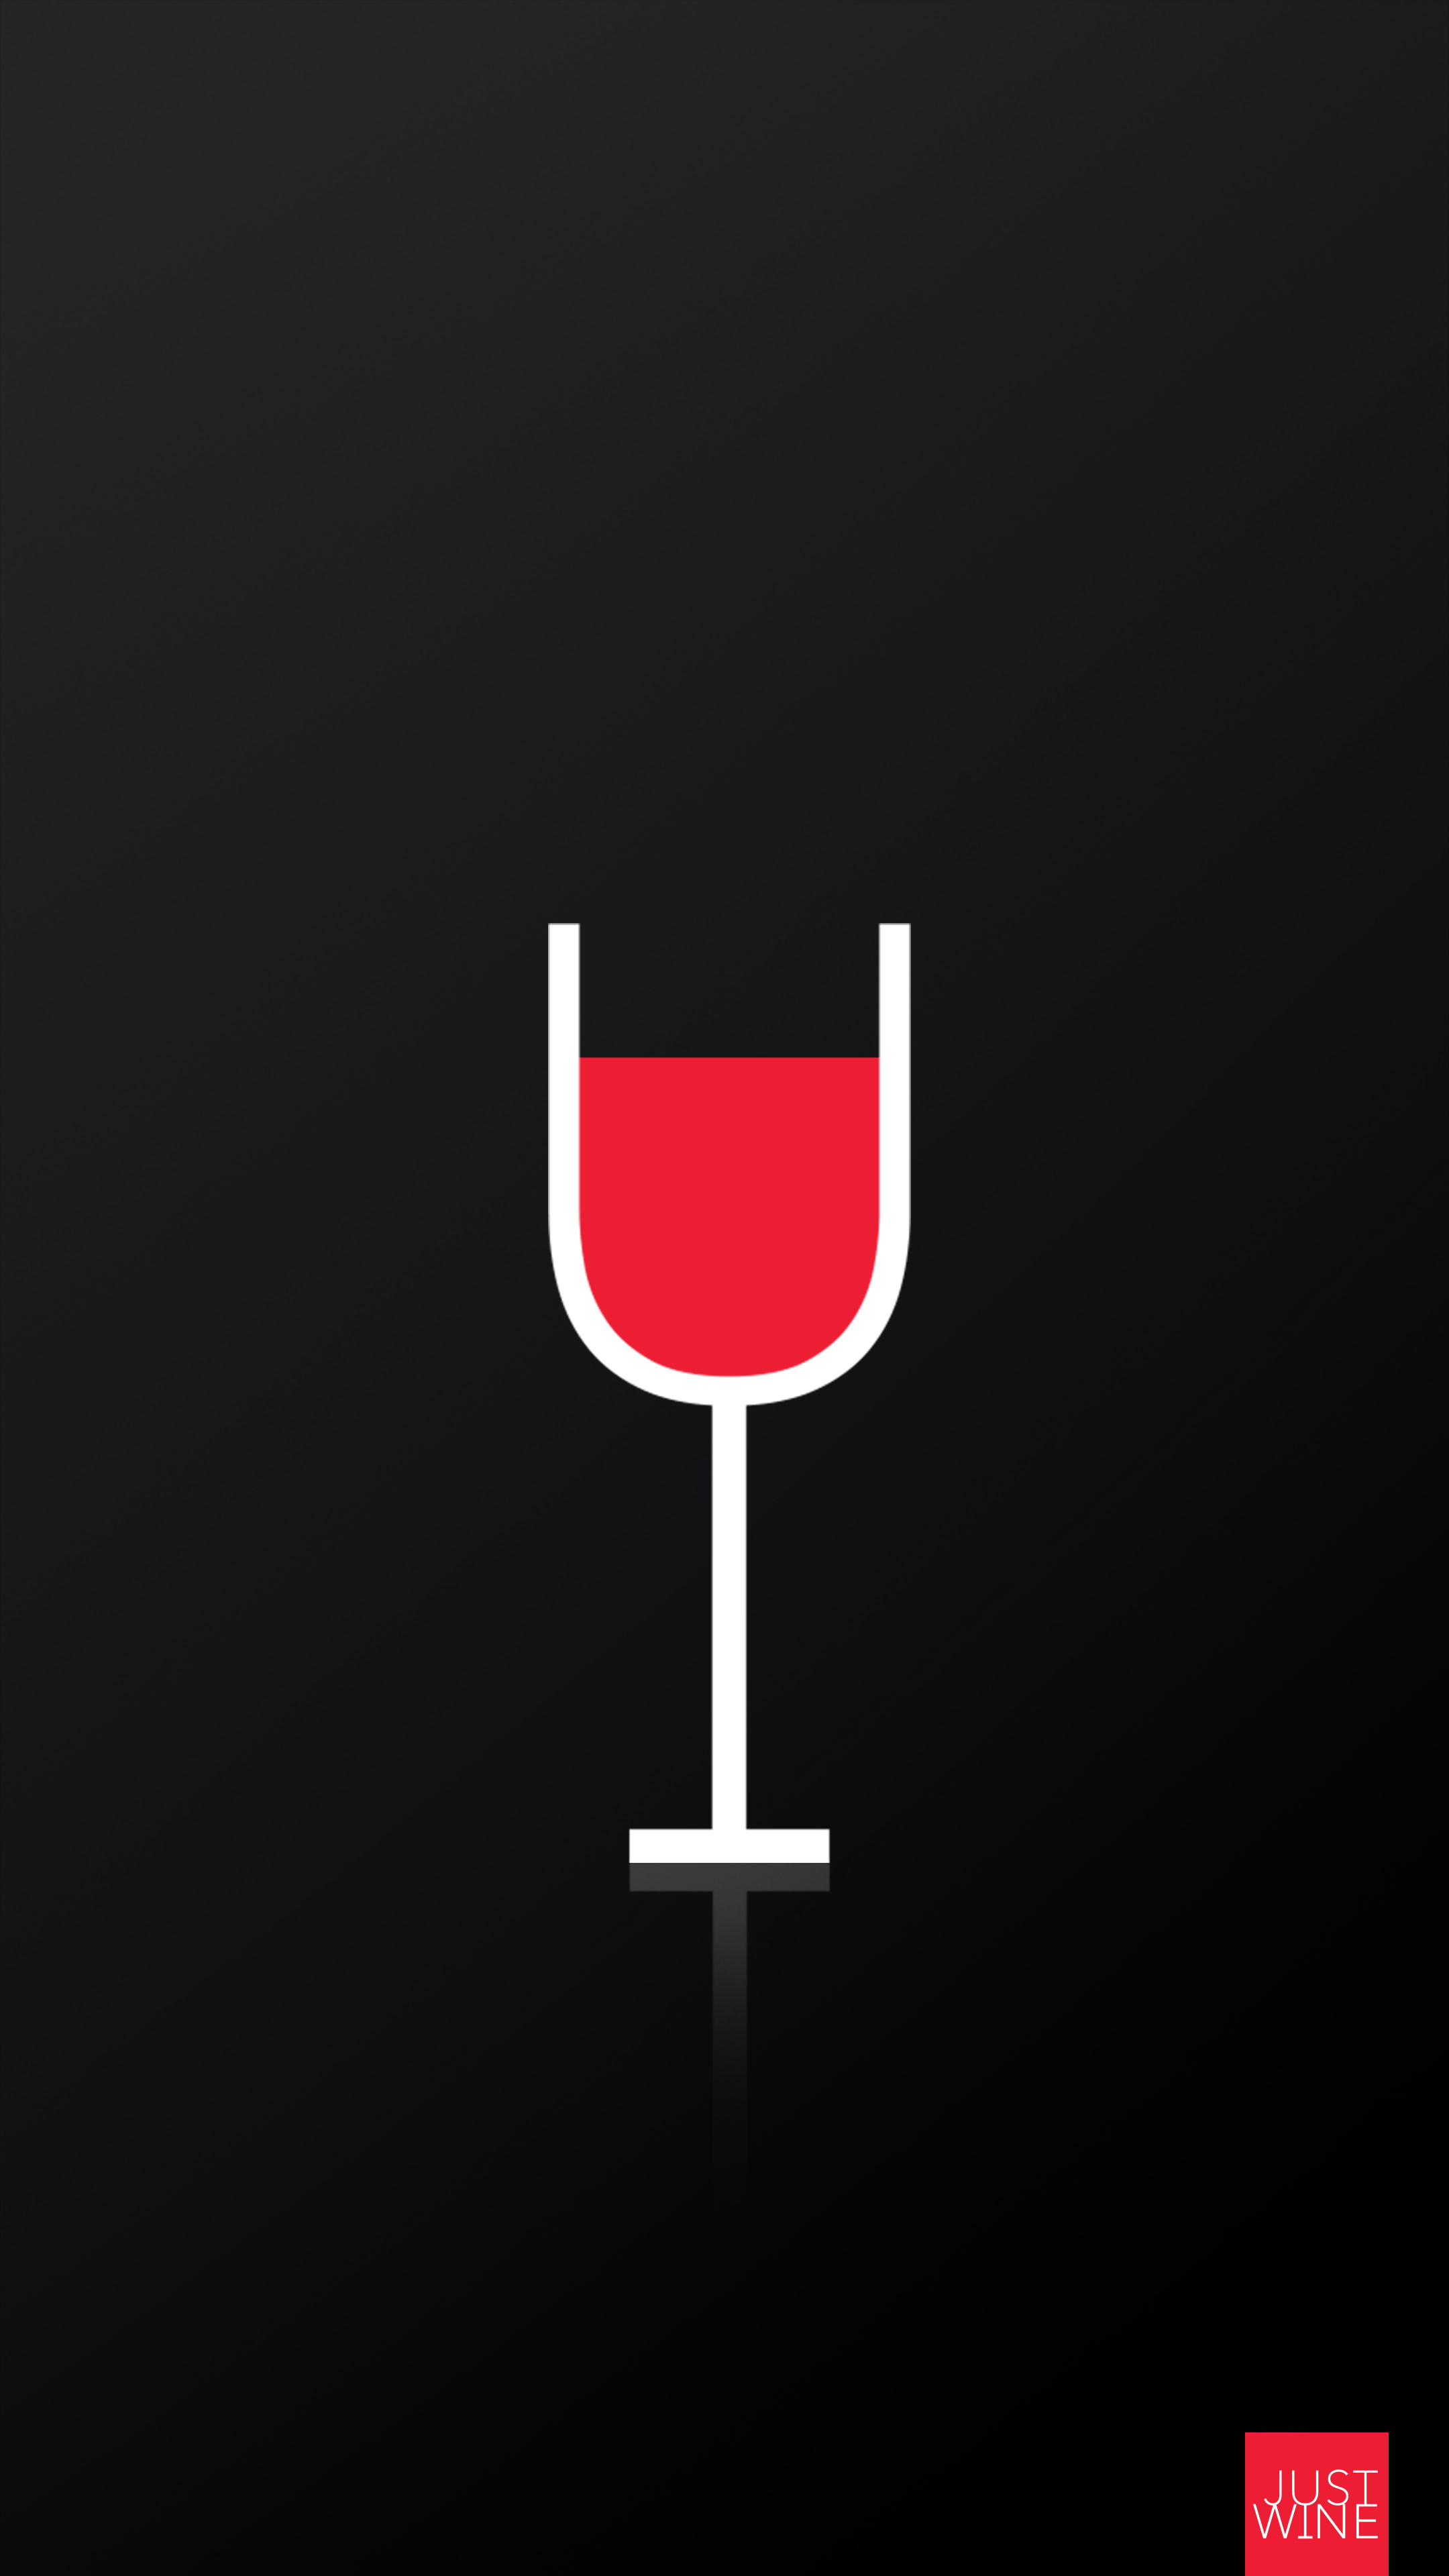 Res: 2160x3840, just-wine-mobile-wallpaper-background-iphone-red ...